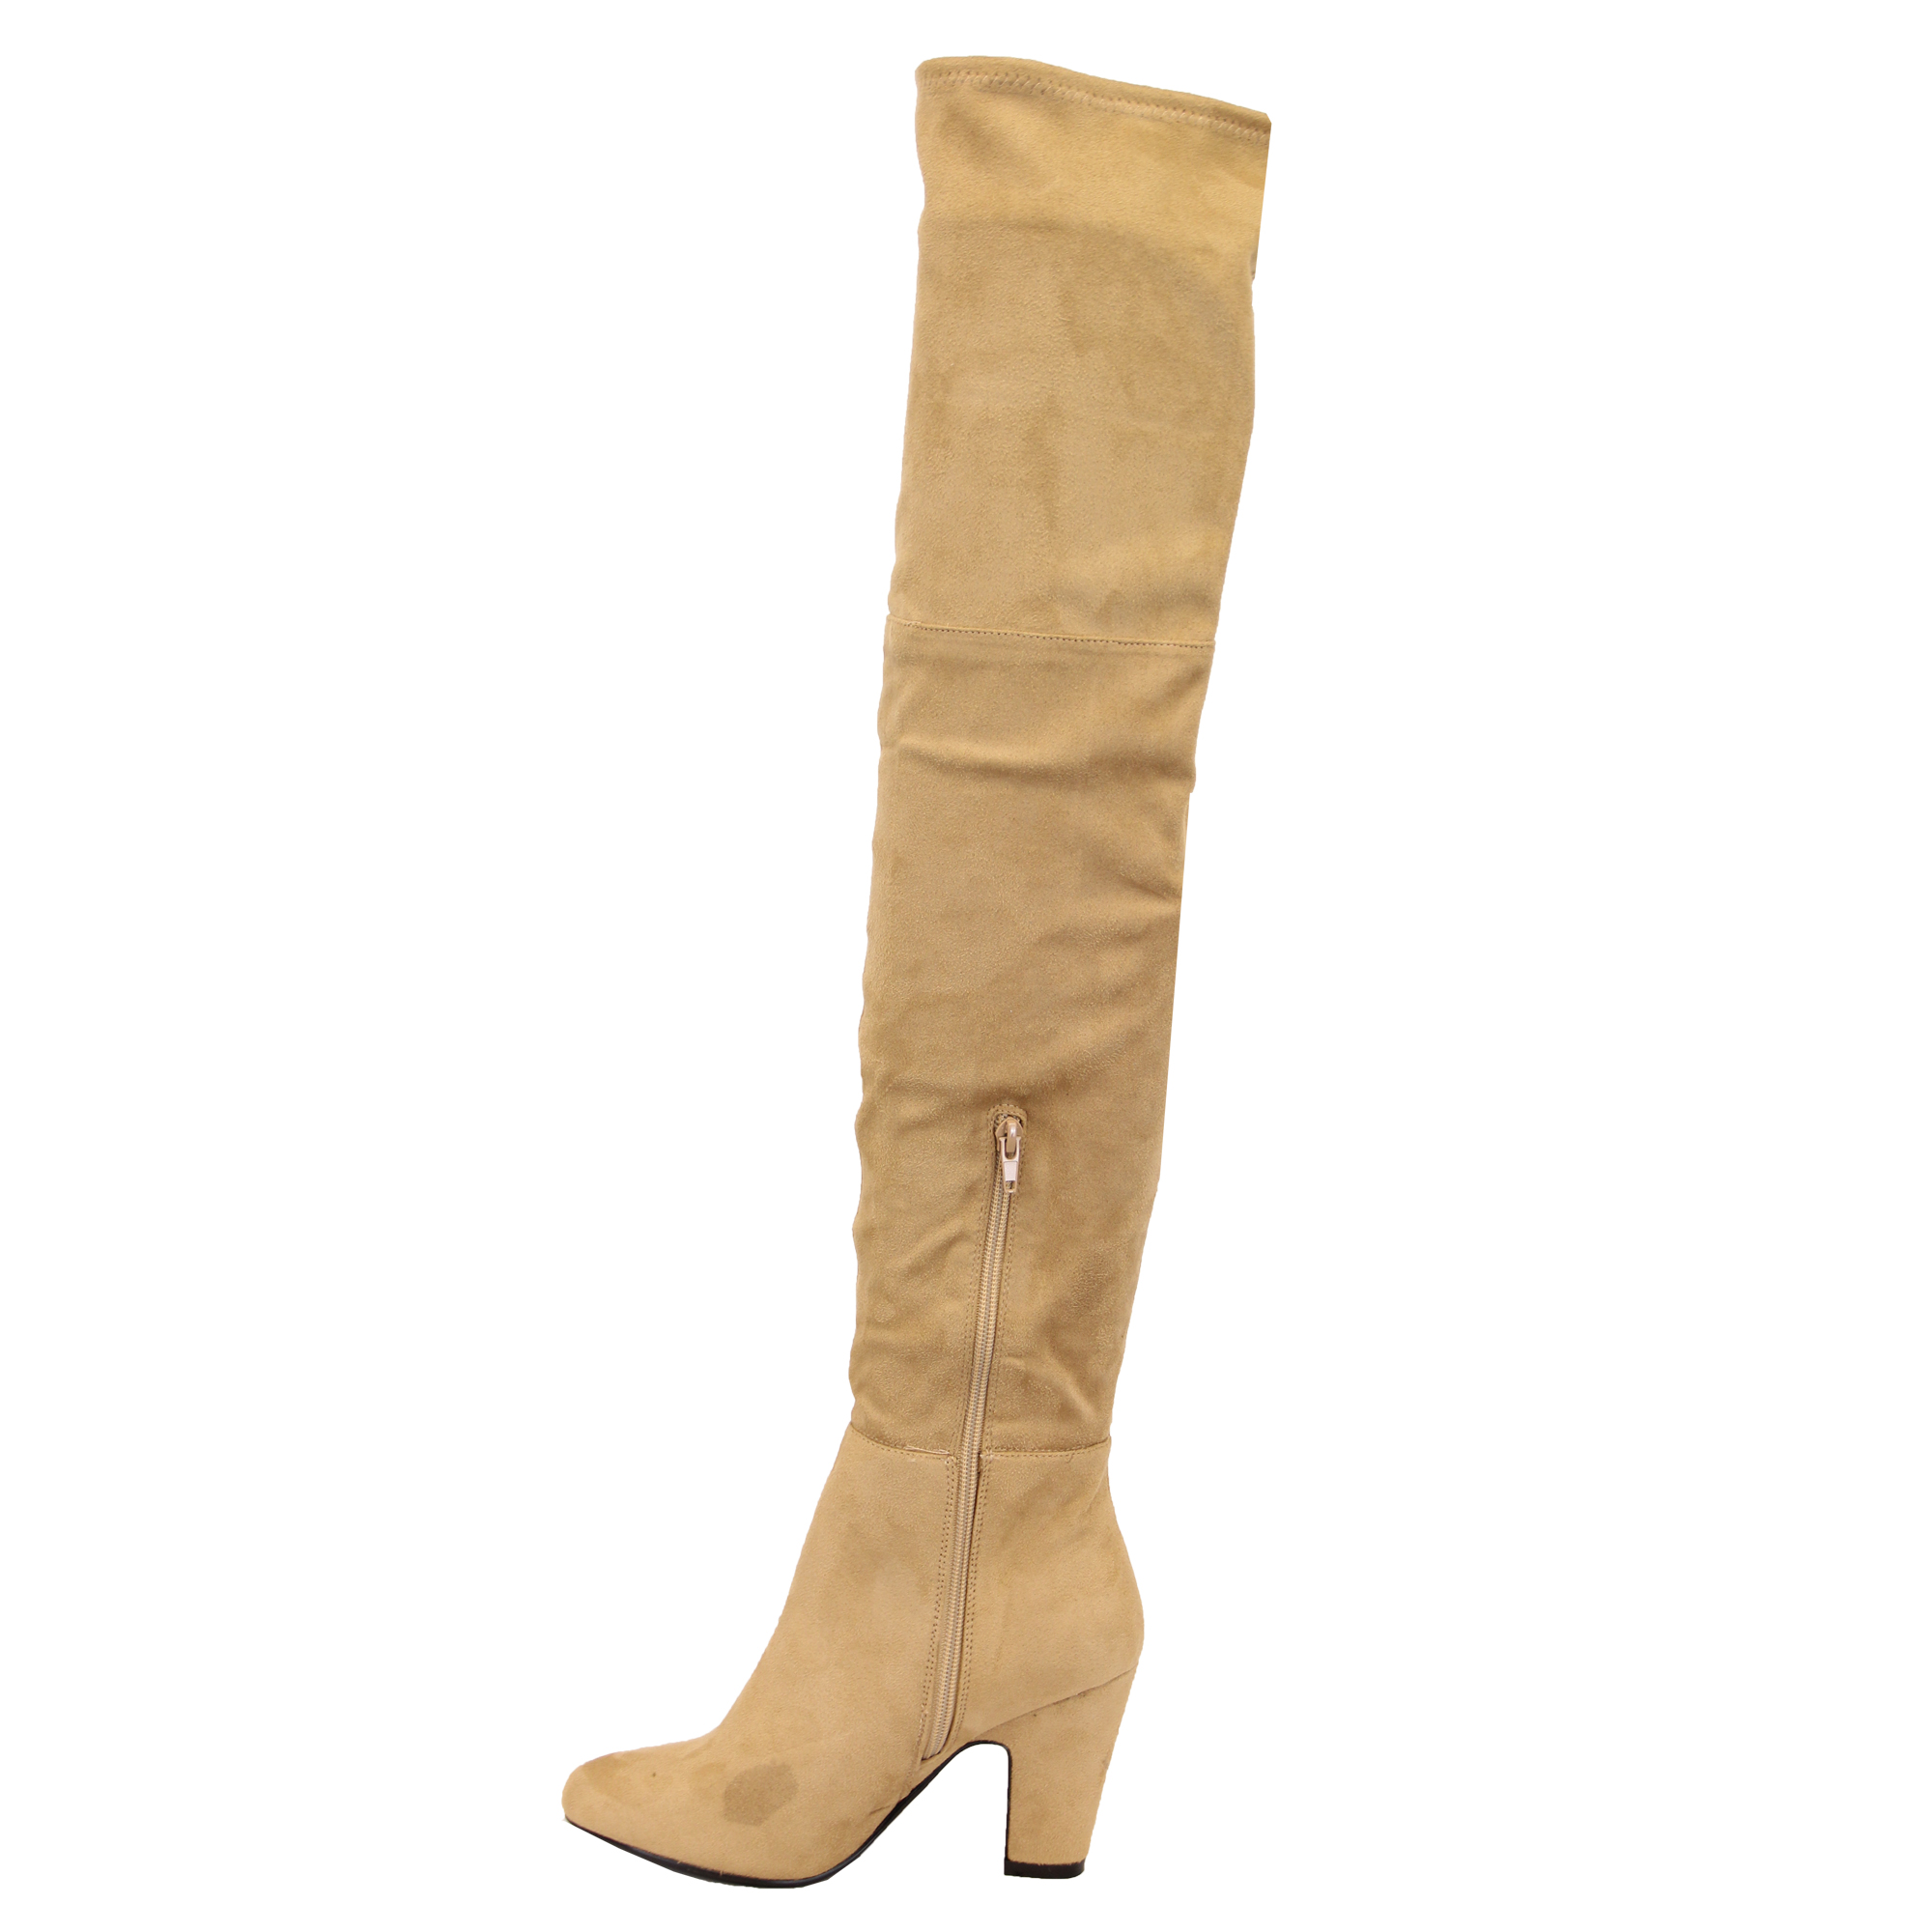 fa1533da718 Ladies Womens Boots Long Over The Knee Suede Look Shoes Casual ...